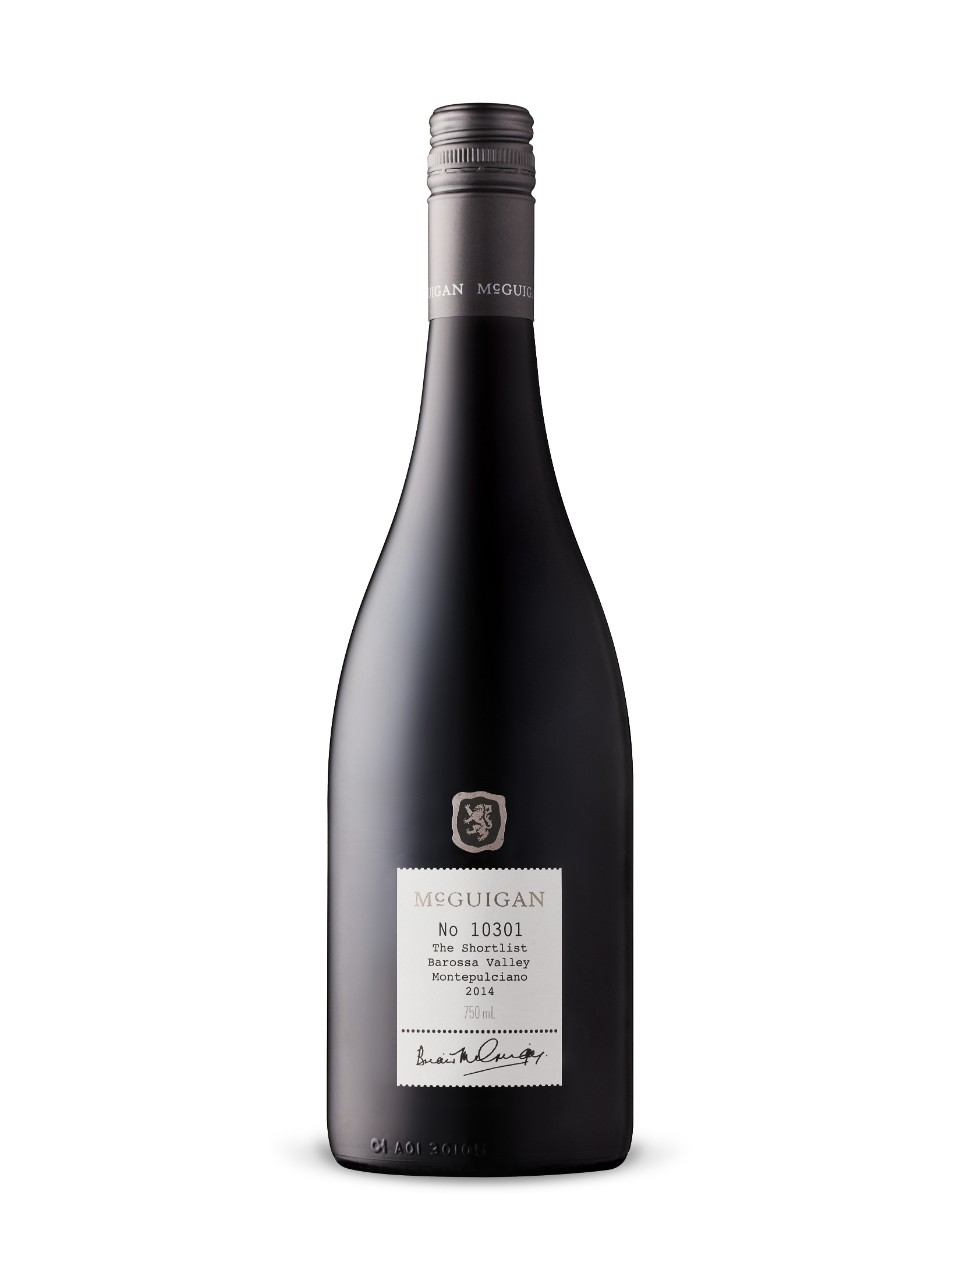 Montepulciano The Shortlist Mcguigan 2014